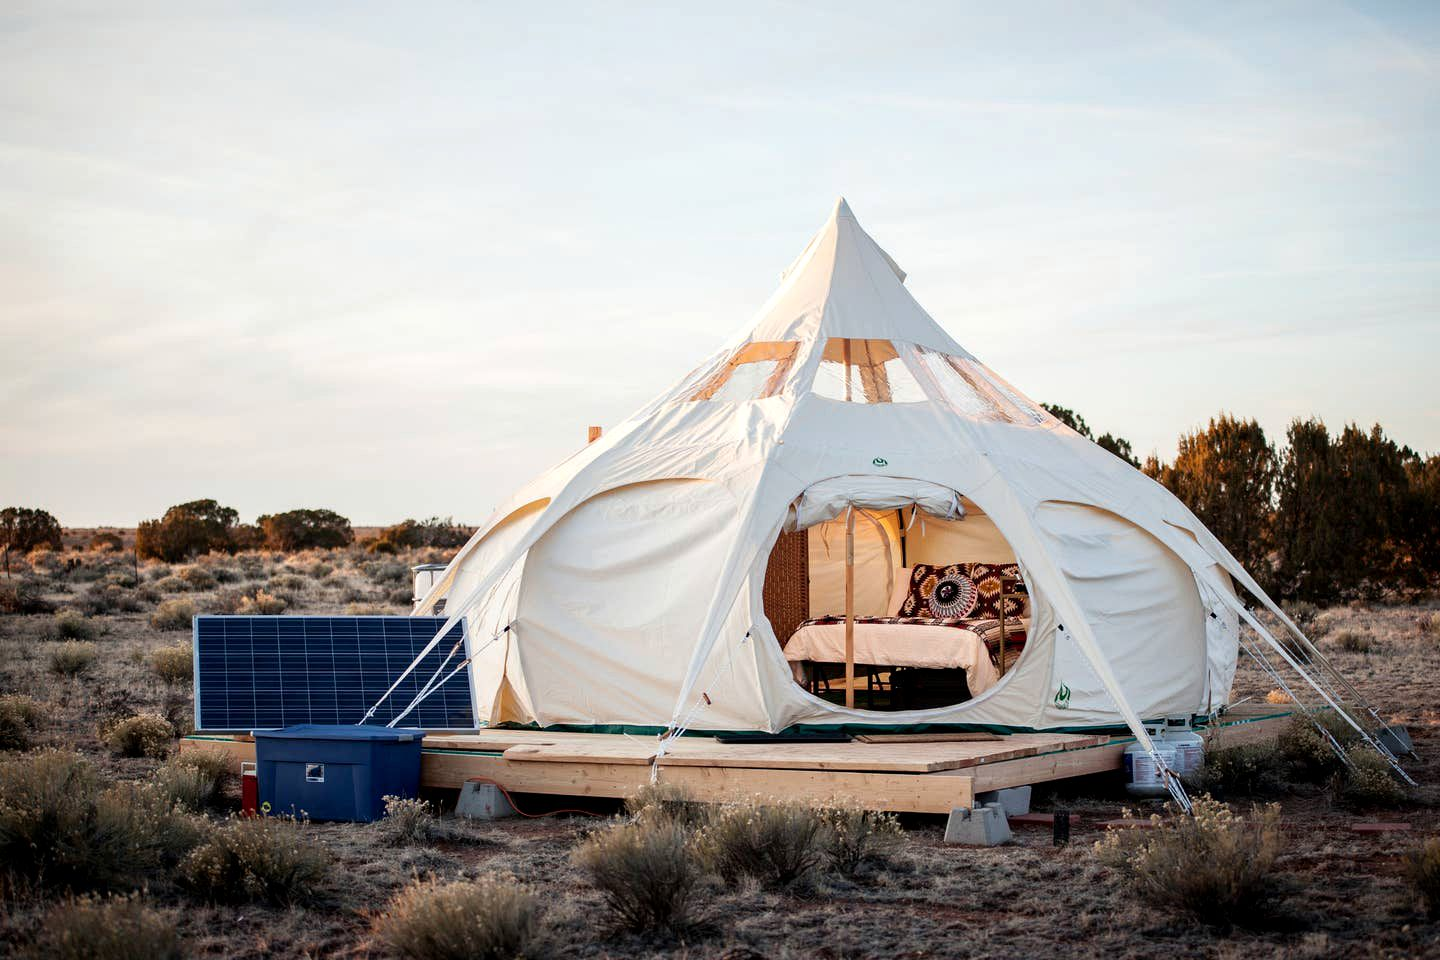 Williams accommodation for glamping near the Grand Canyon.